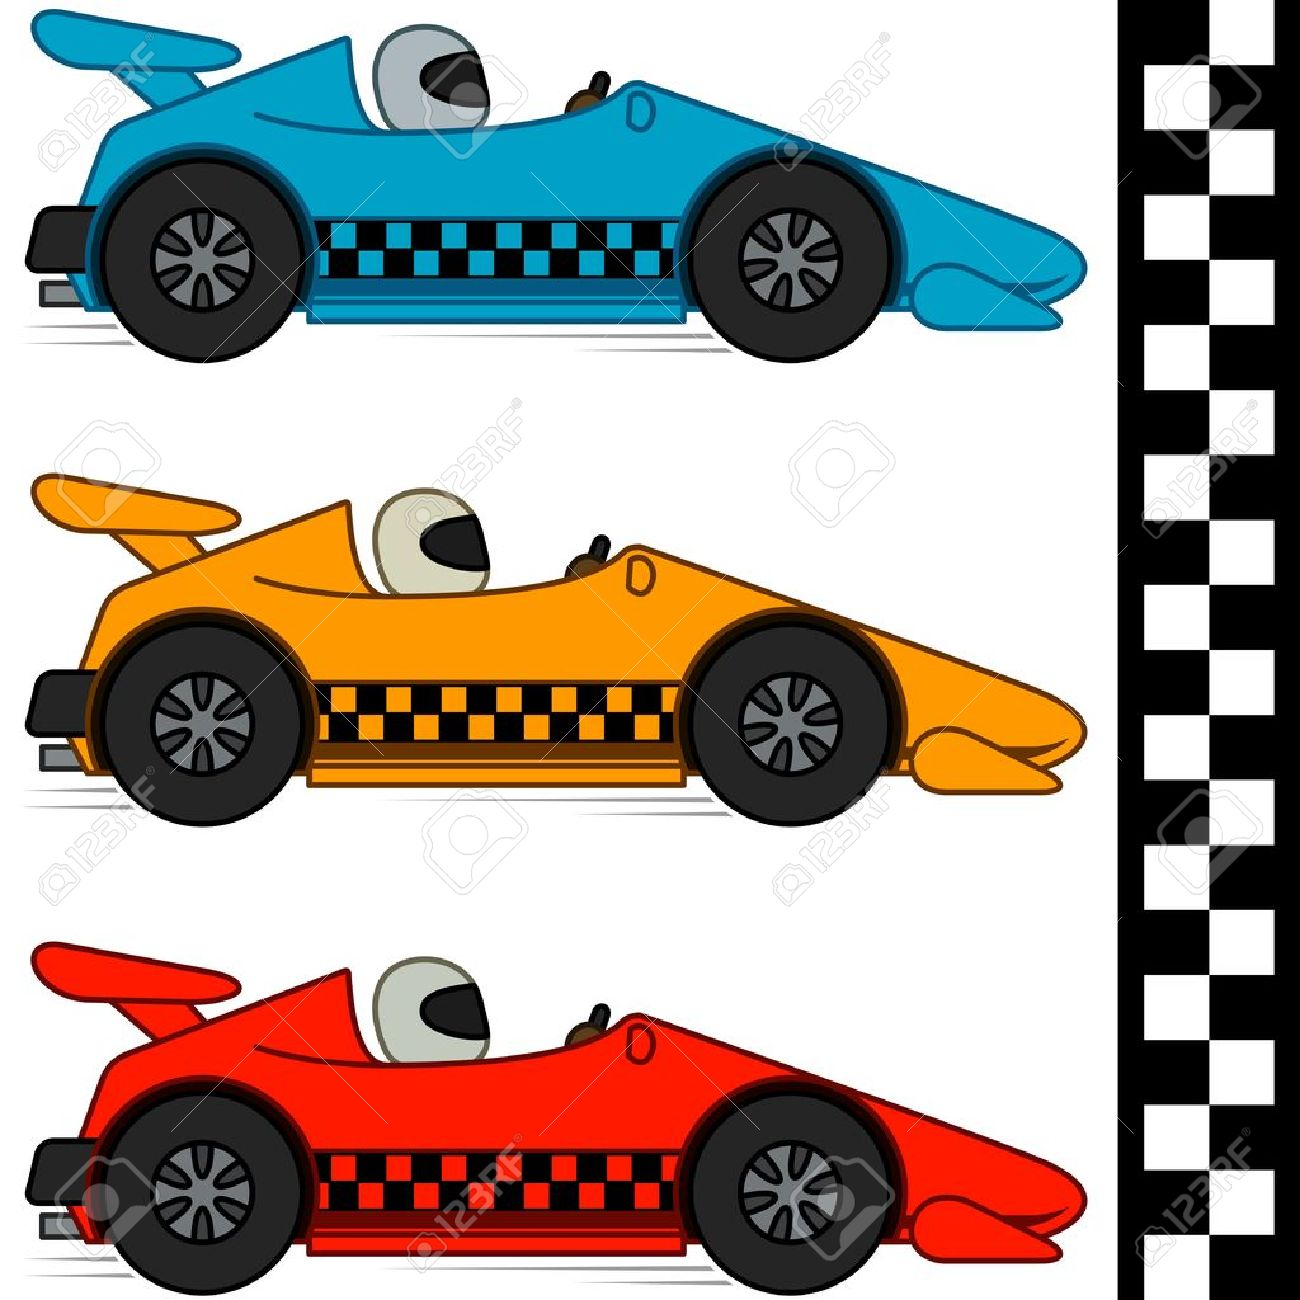 Racing cars and Finishing Line  Race Car Side View Clipart